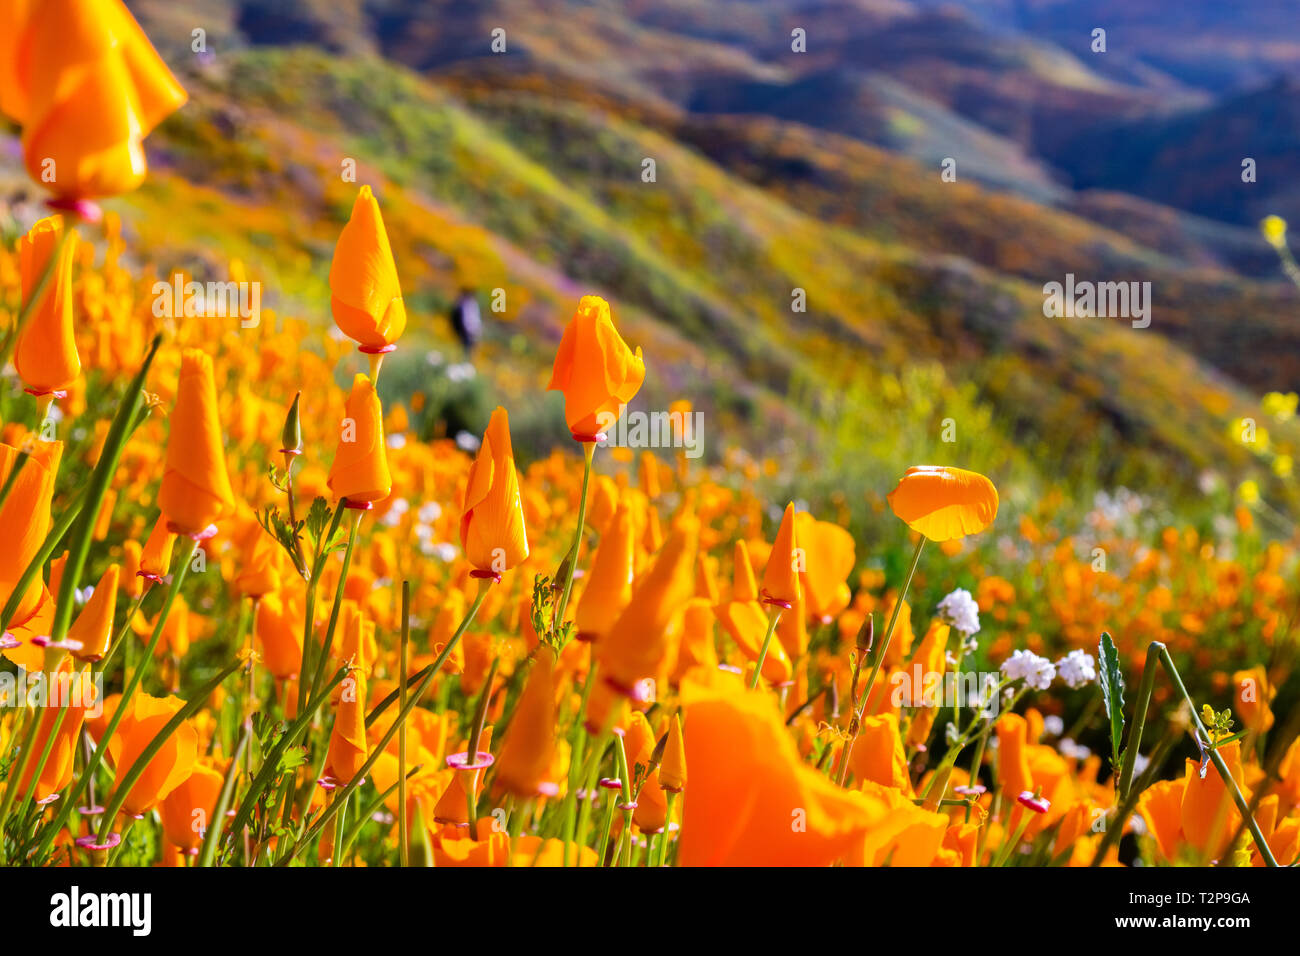 California poppies blooming in Walker Canyon during the superbloom, Lake Elsinore, south California - Stock Image